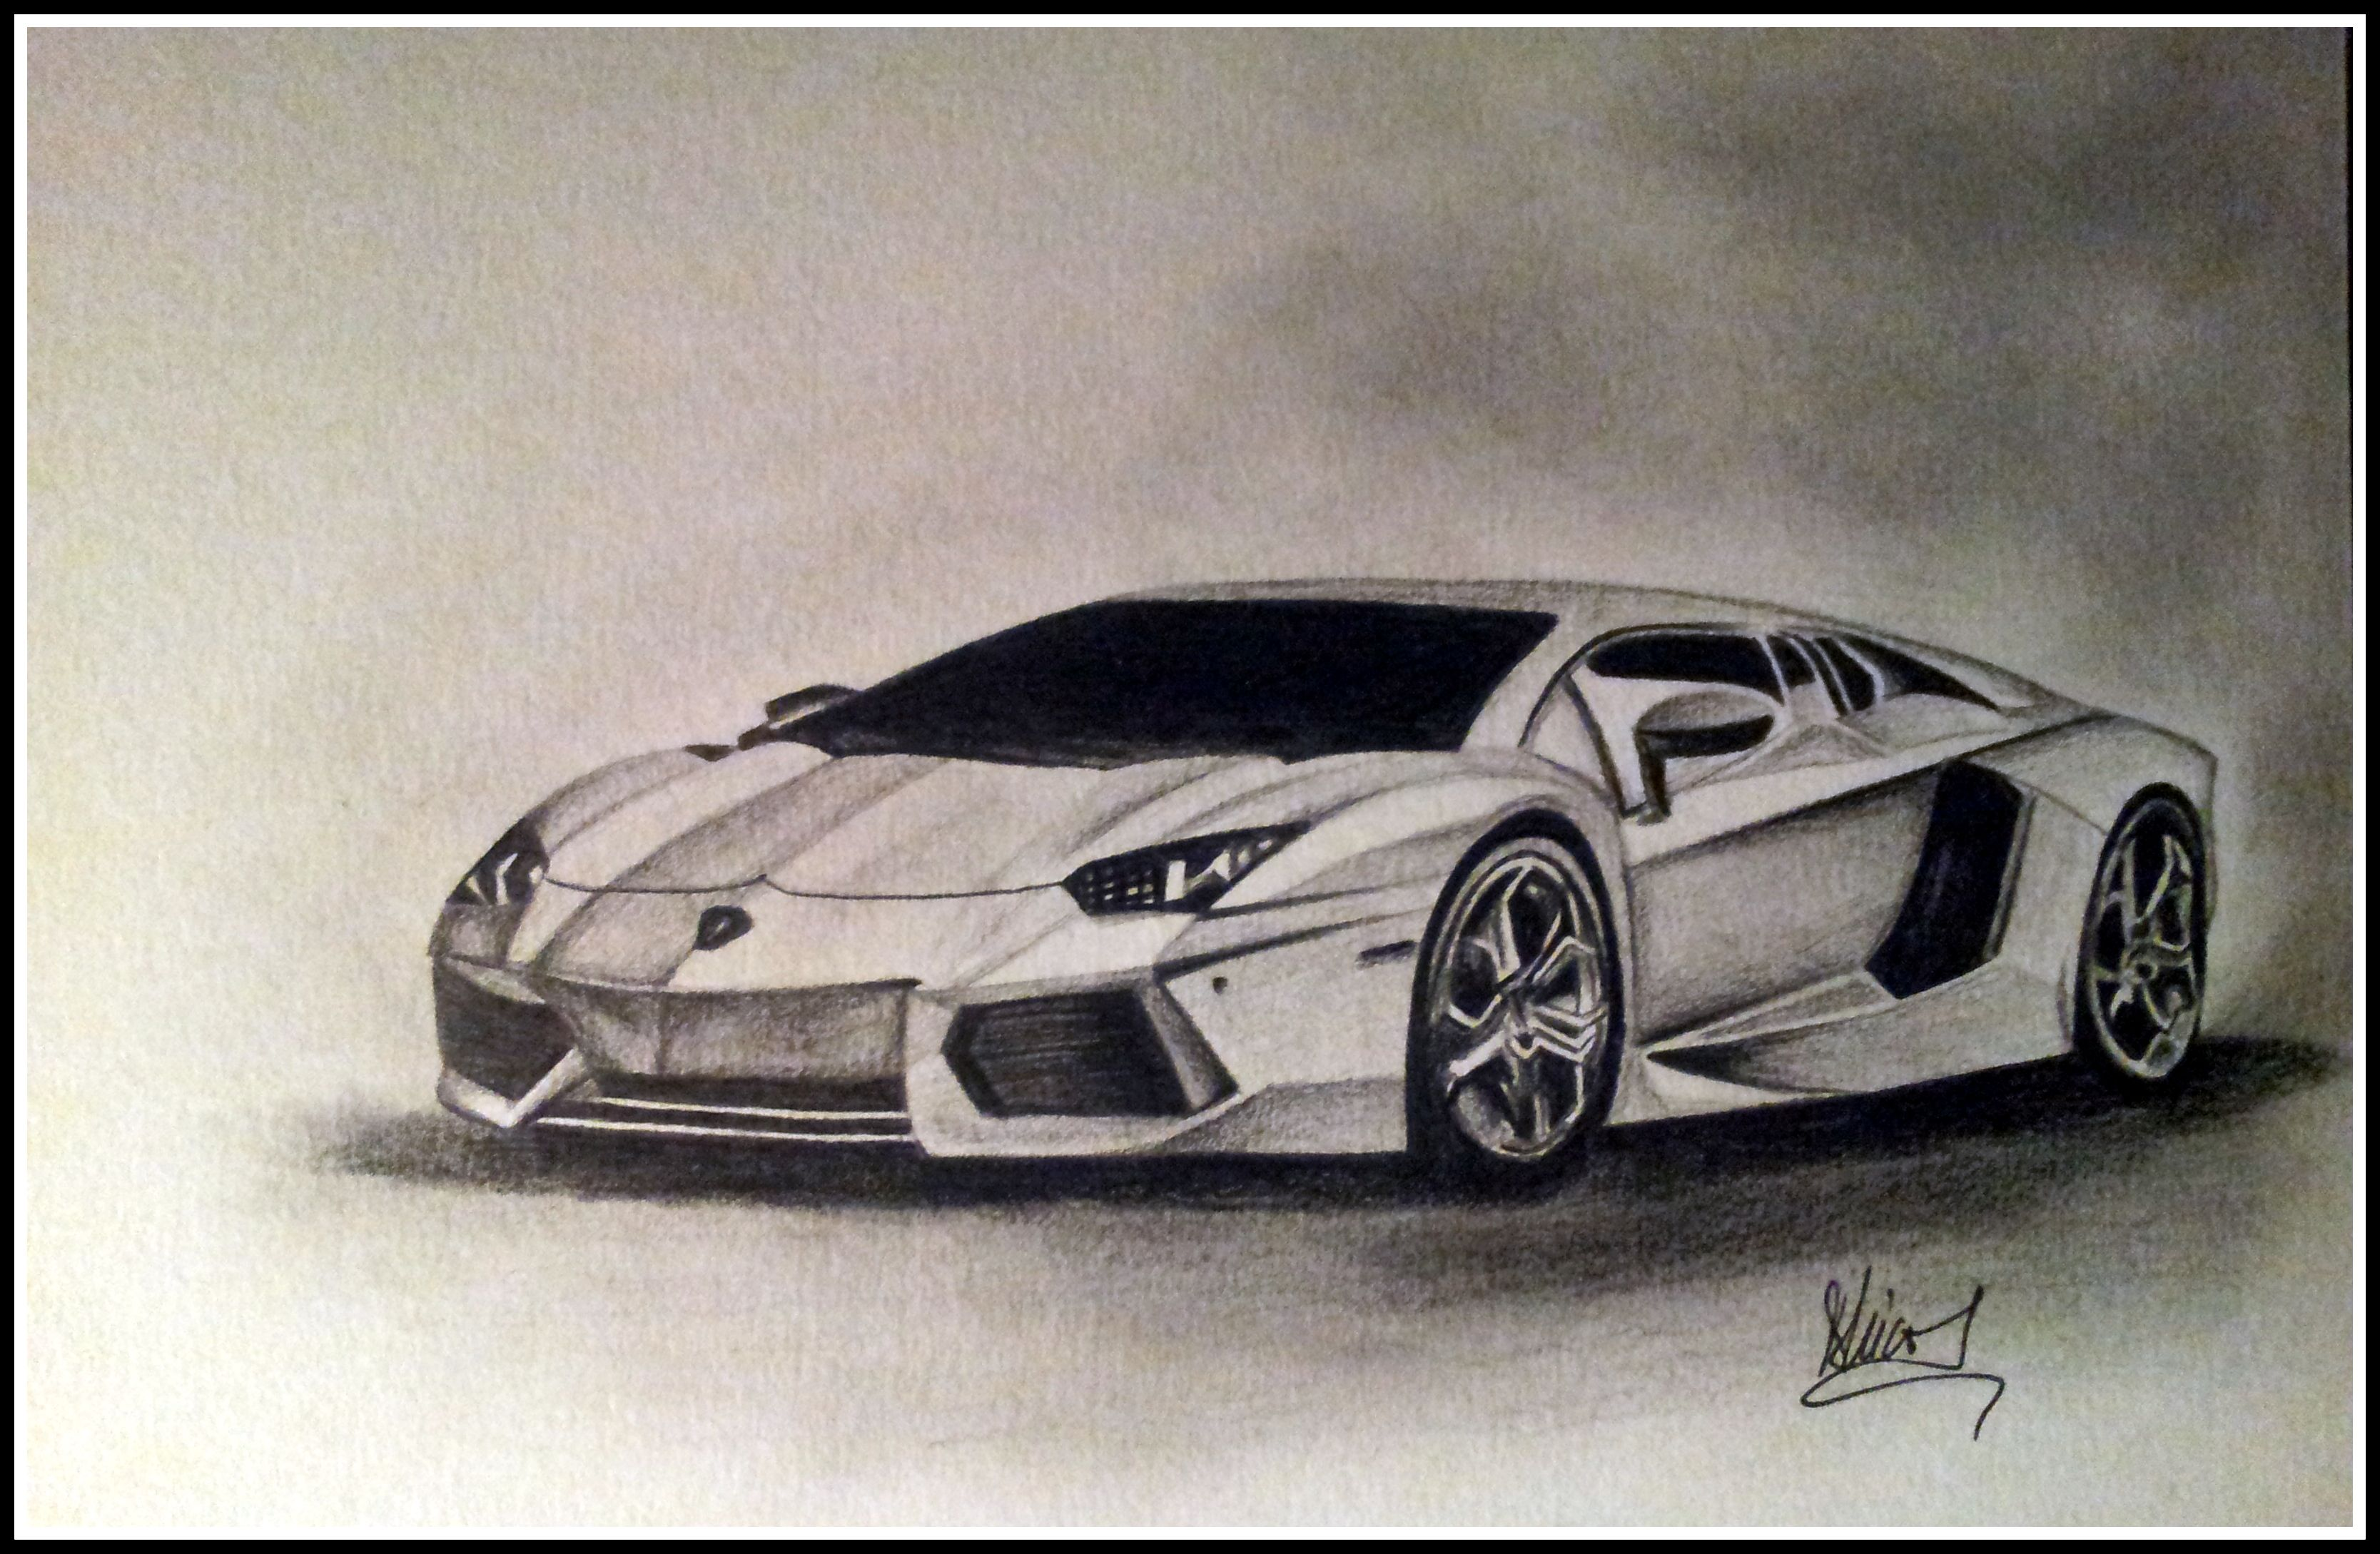 Lamborghini Aventador pencil drawing | My Artwork | Pinterest ...